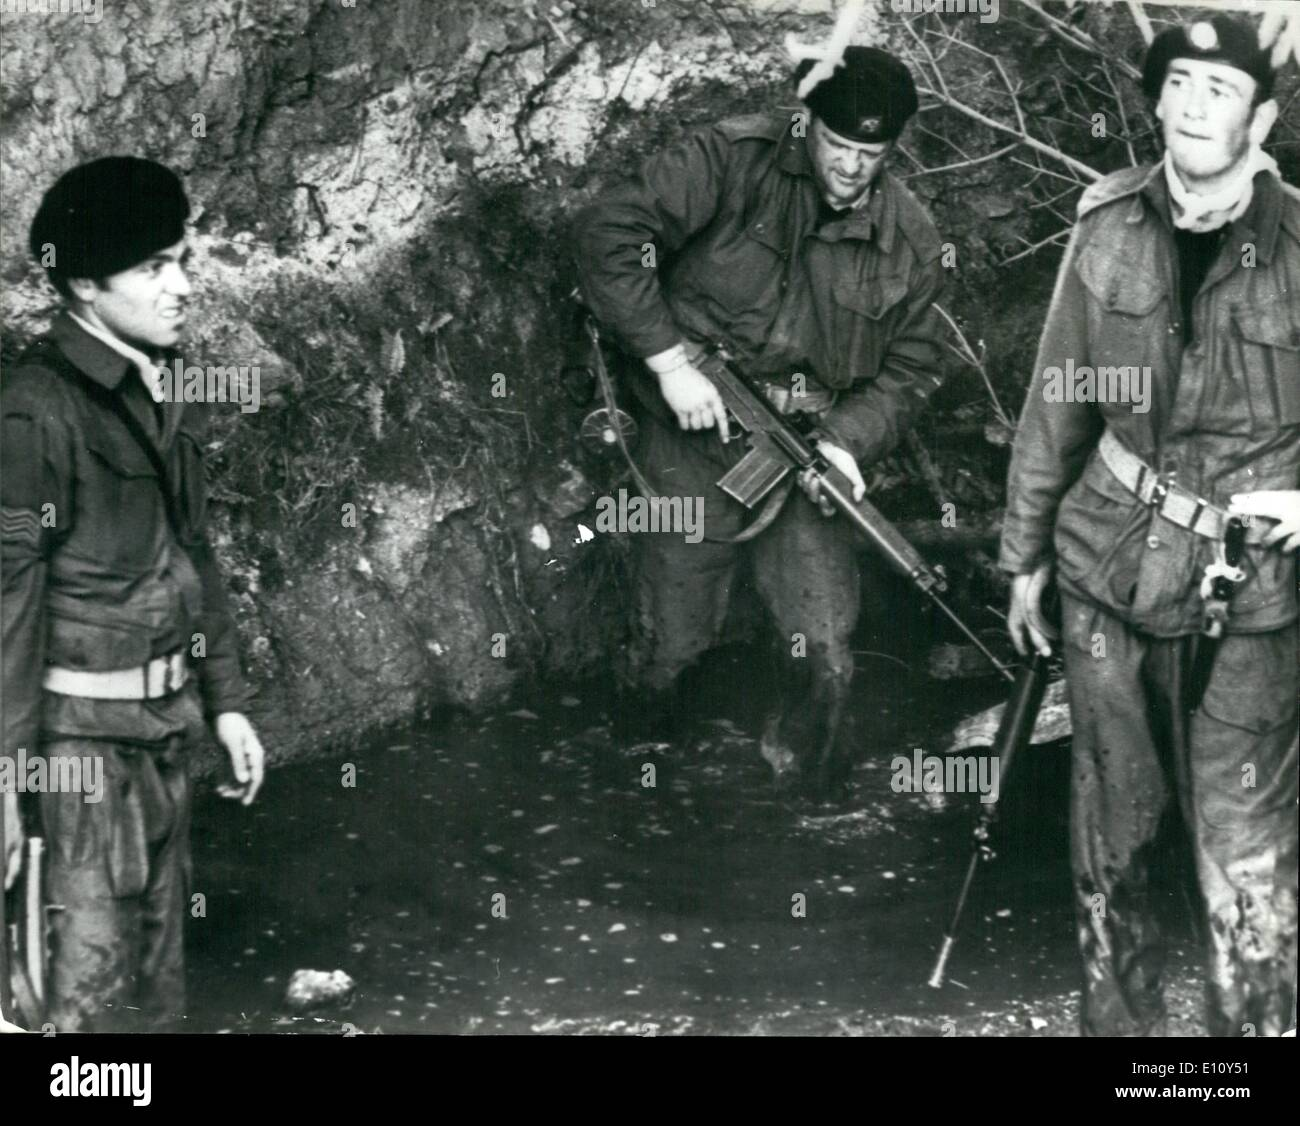 Aug. 08, 1974 - Hunt for IRA escapers: Hundreds of police and soldiers were last night carrying out an intensive - Stock Image